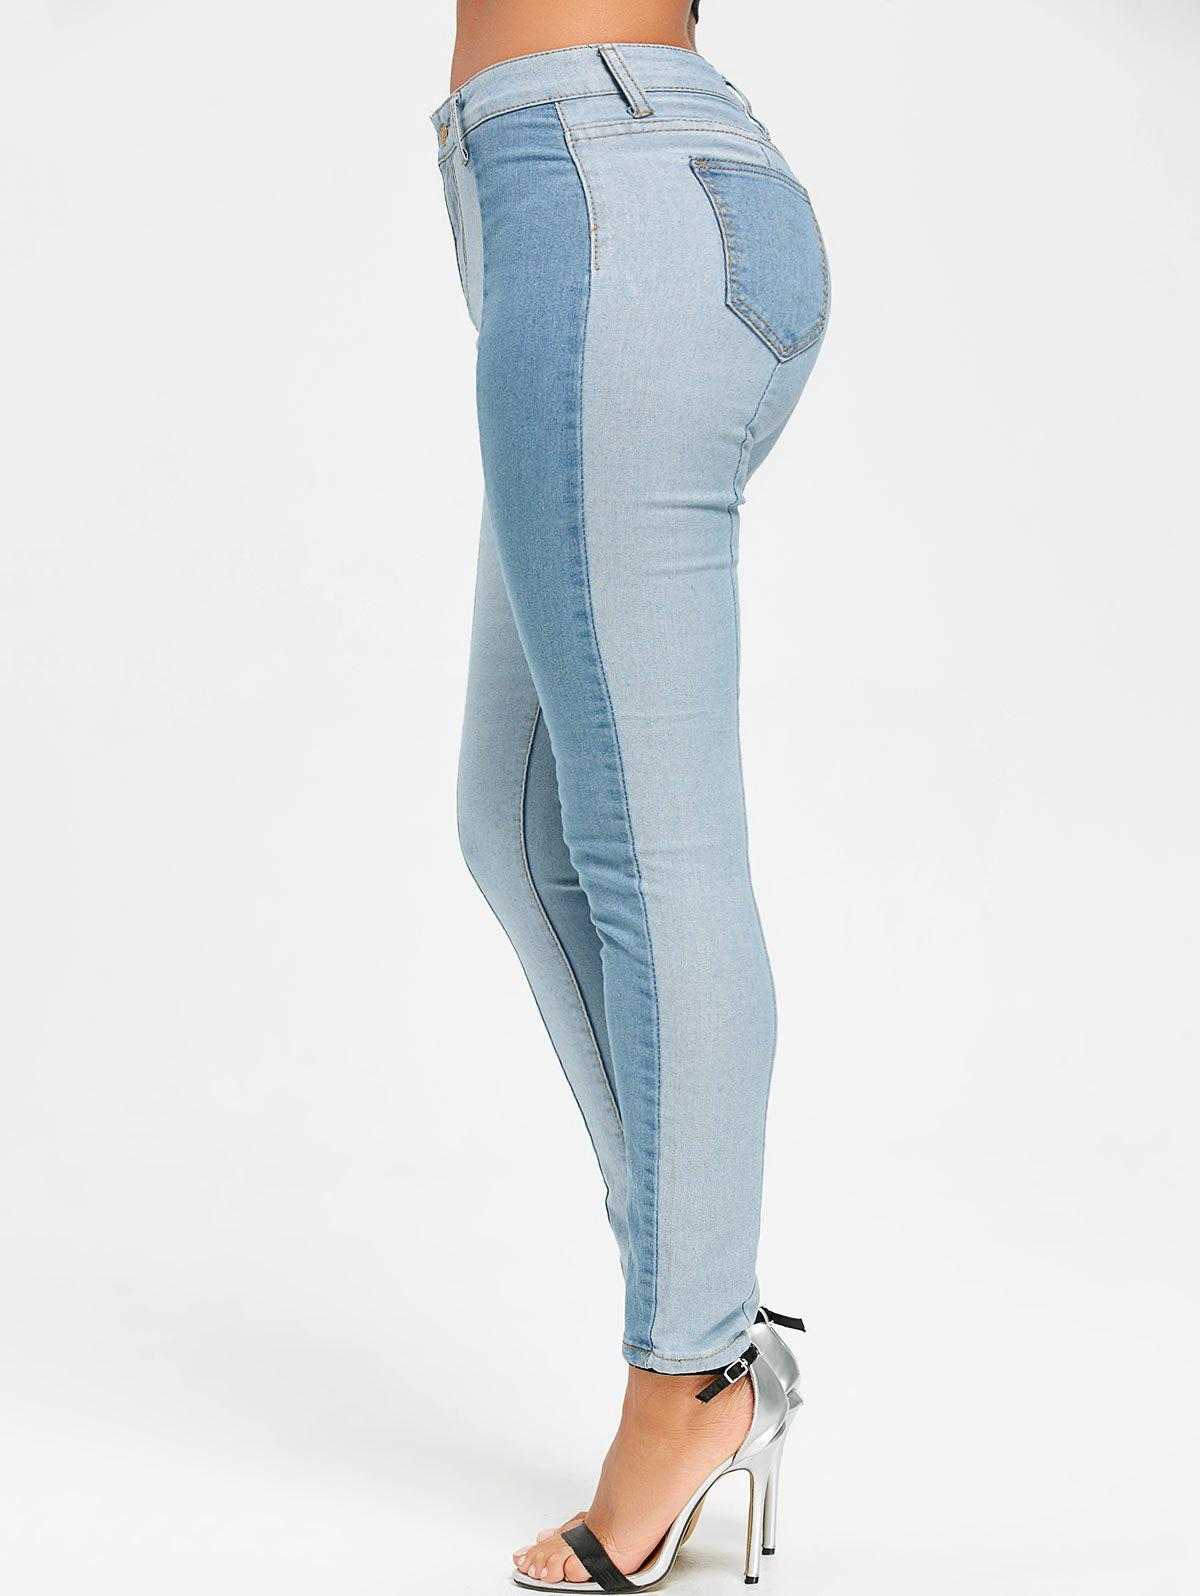 Skinny Two Tone Color Denim Jeans - CLOUDY XL